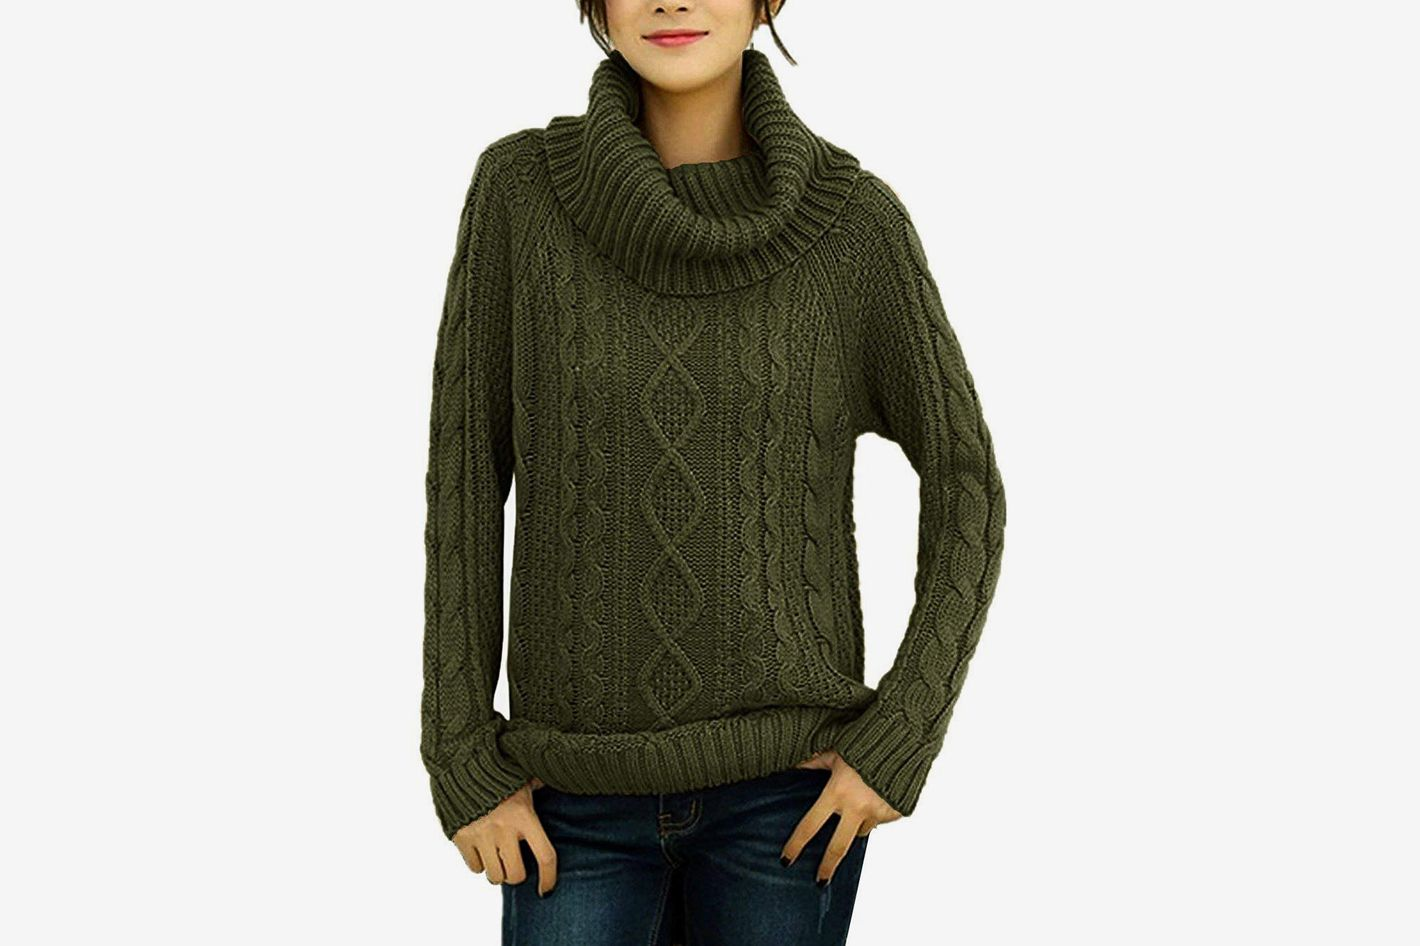 aa425b0fdf v28 Women s Korean Design Turtle Cowl Neck Ribbed Cable Knit Long Sweater  Jumper